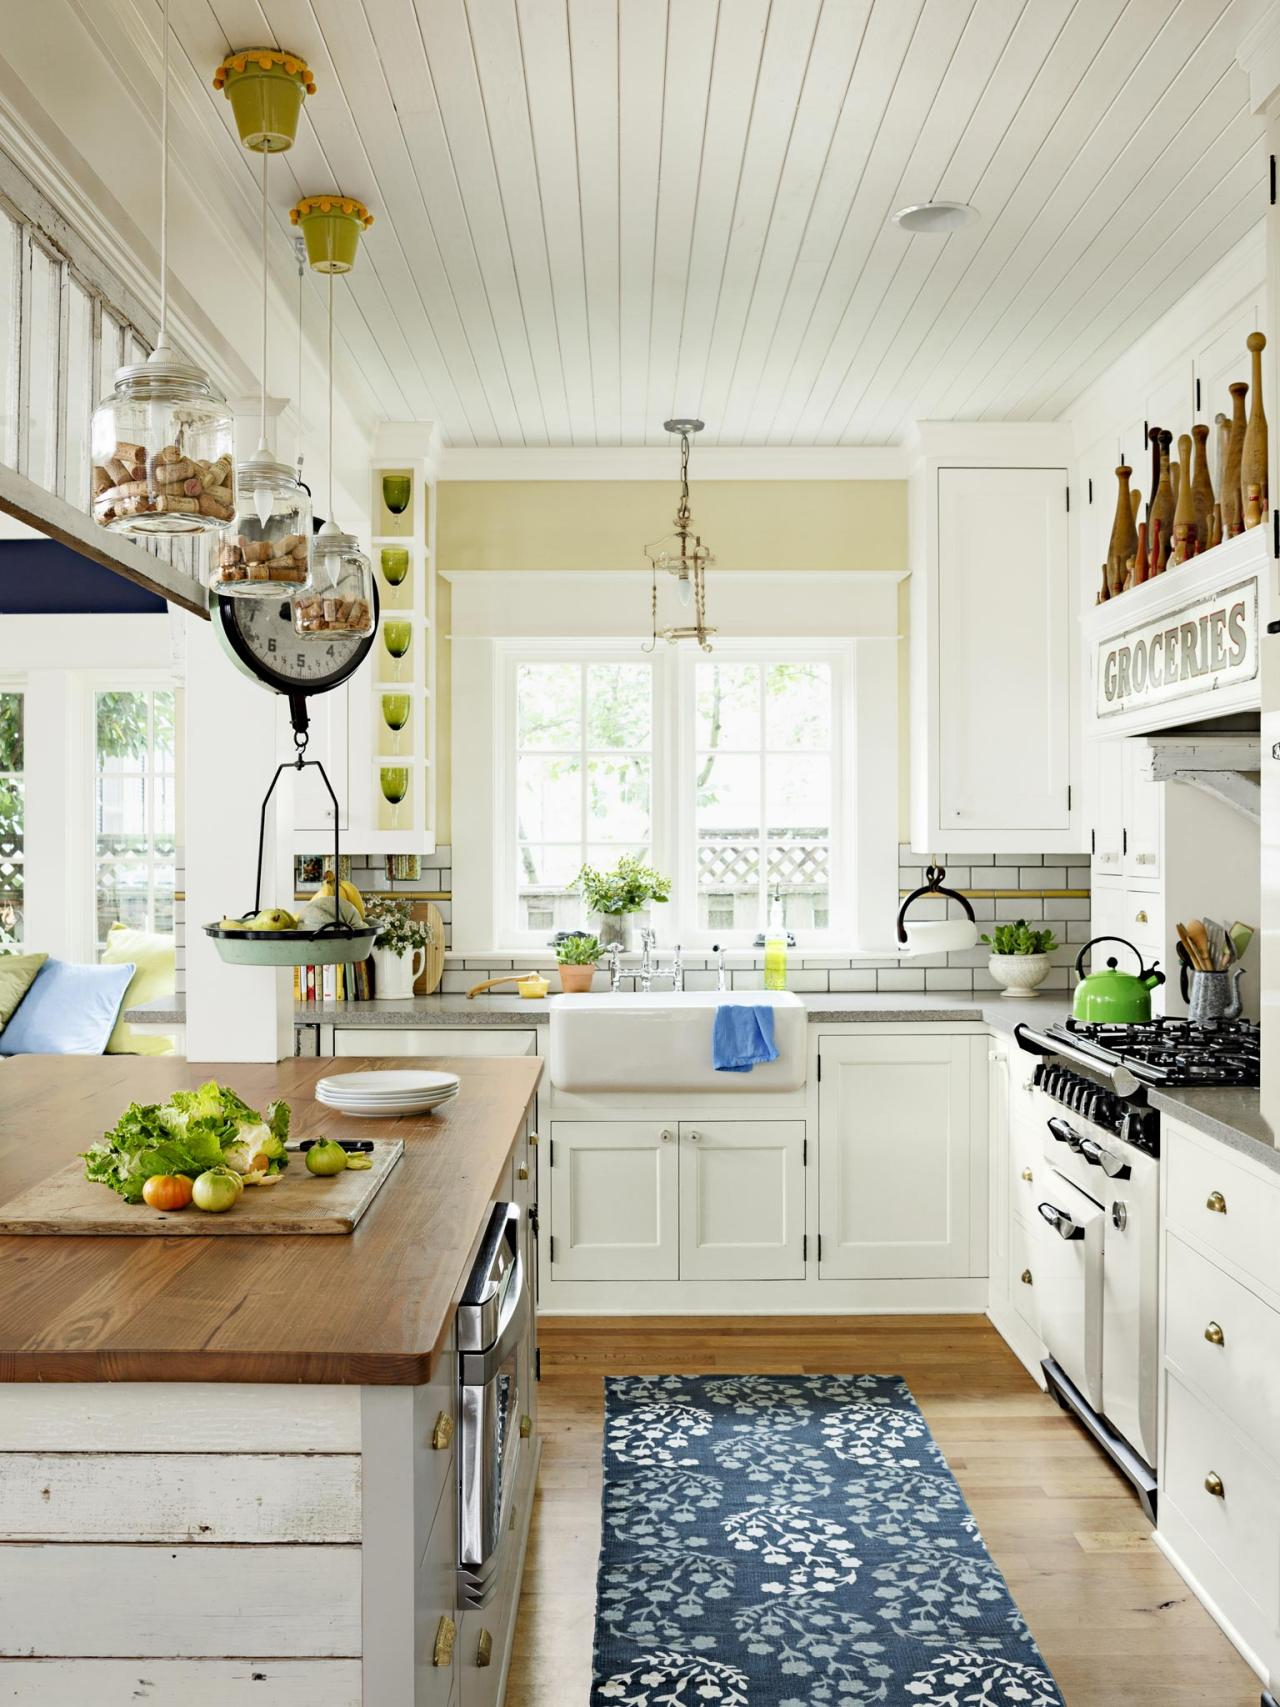 Kitchen Room Interior Design: Antique Kitchen Decorating: Pictures & Ideas From HGTV